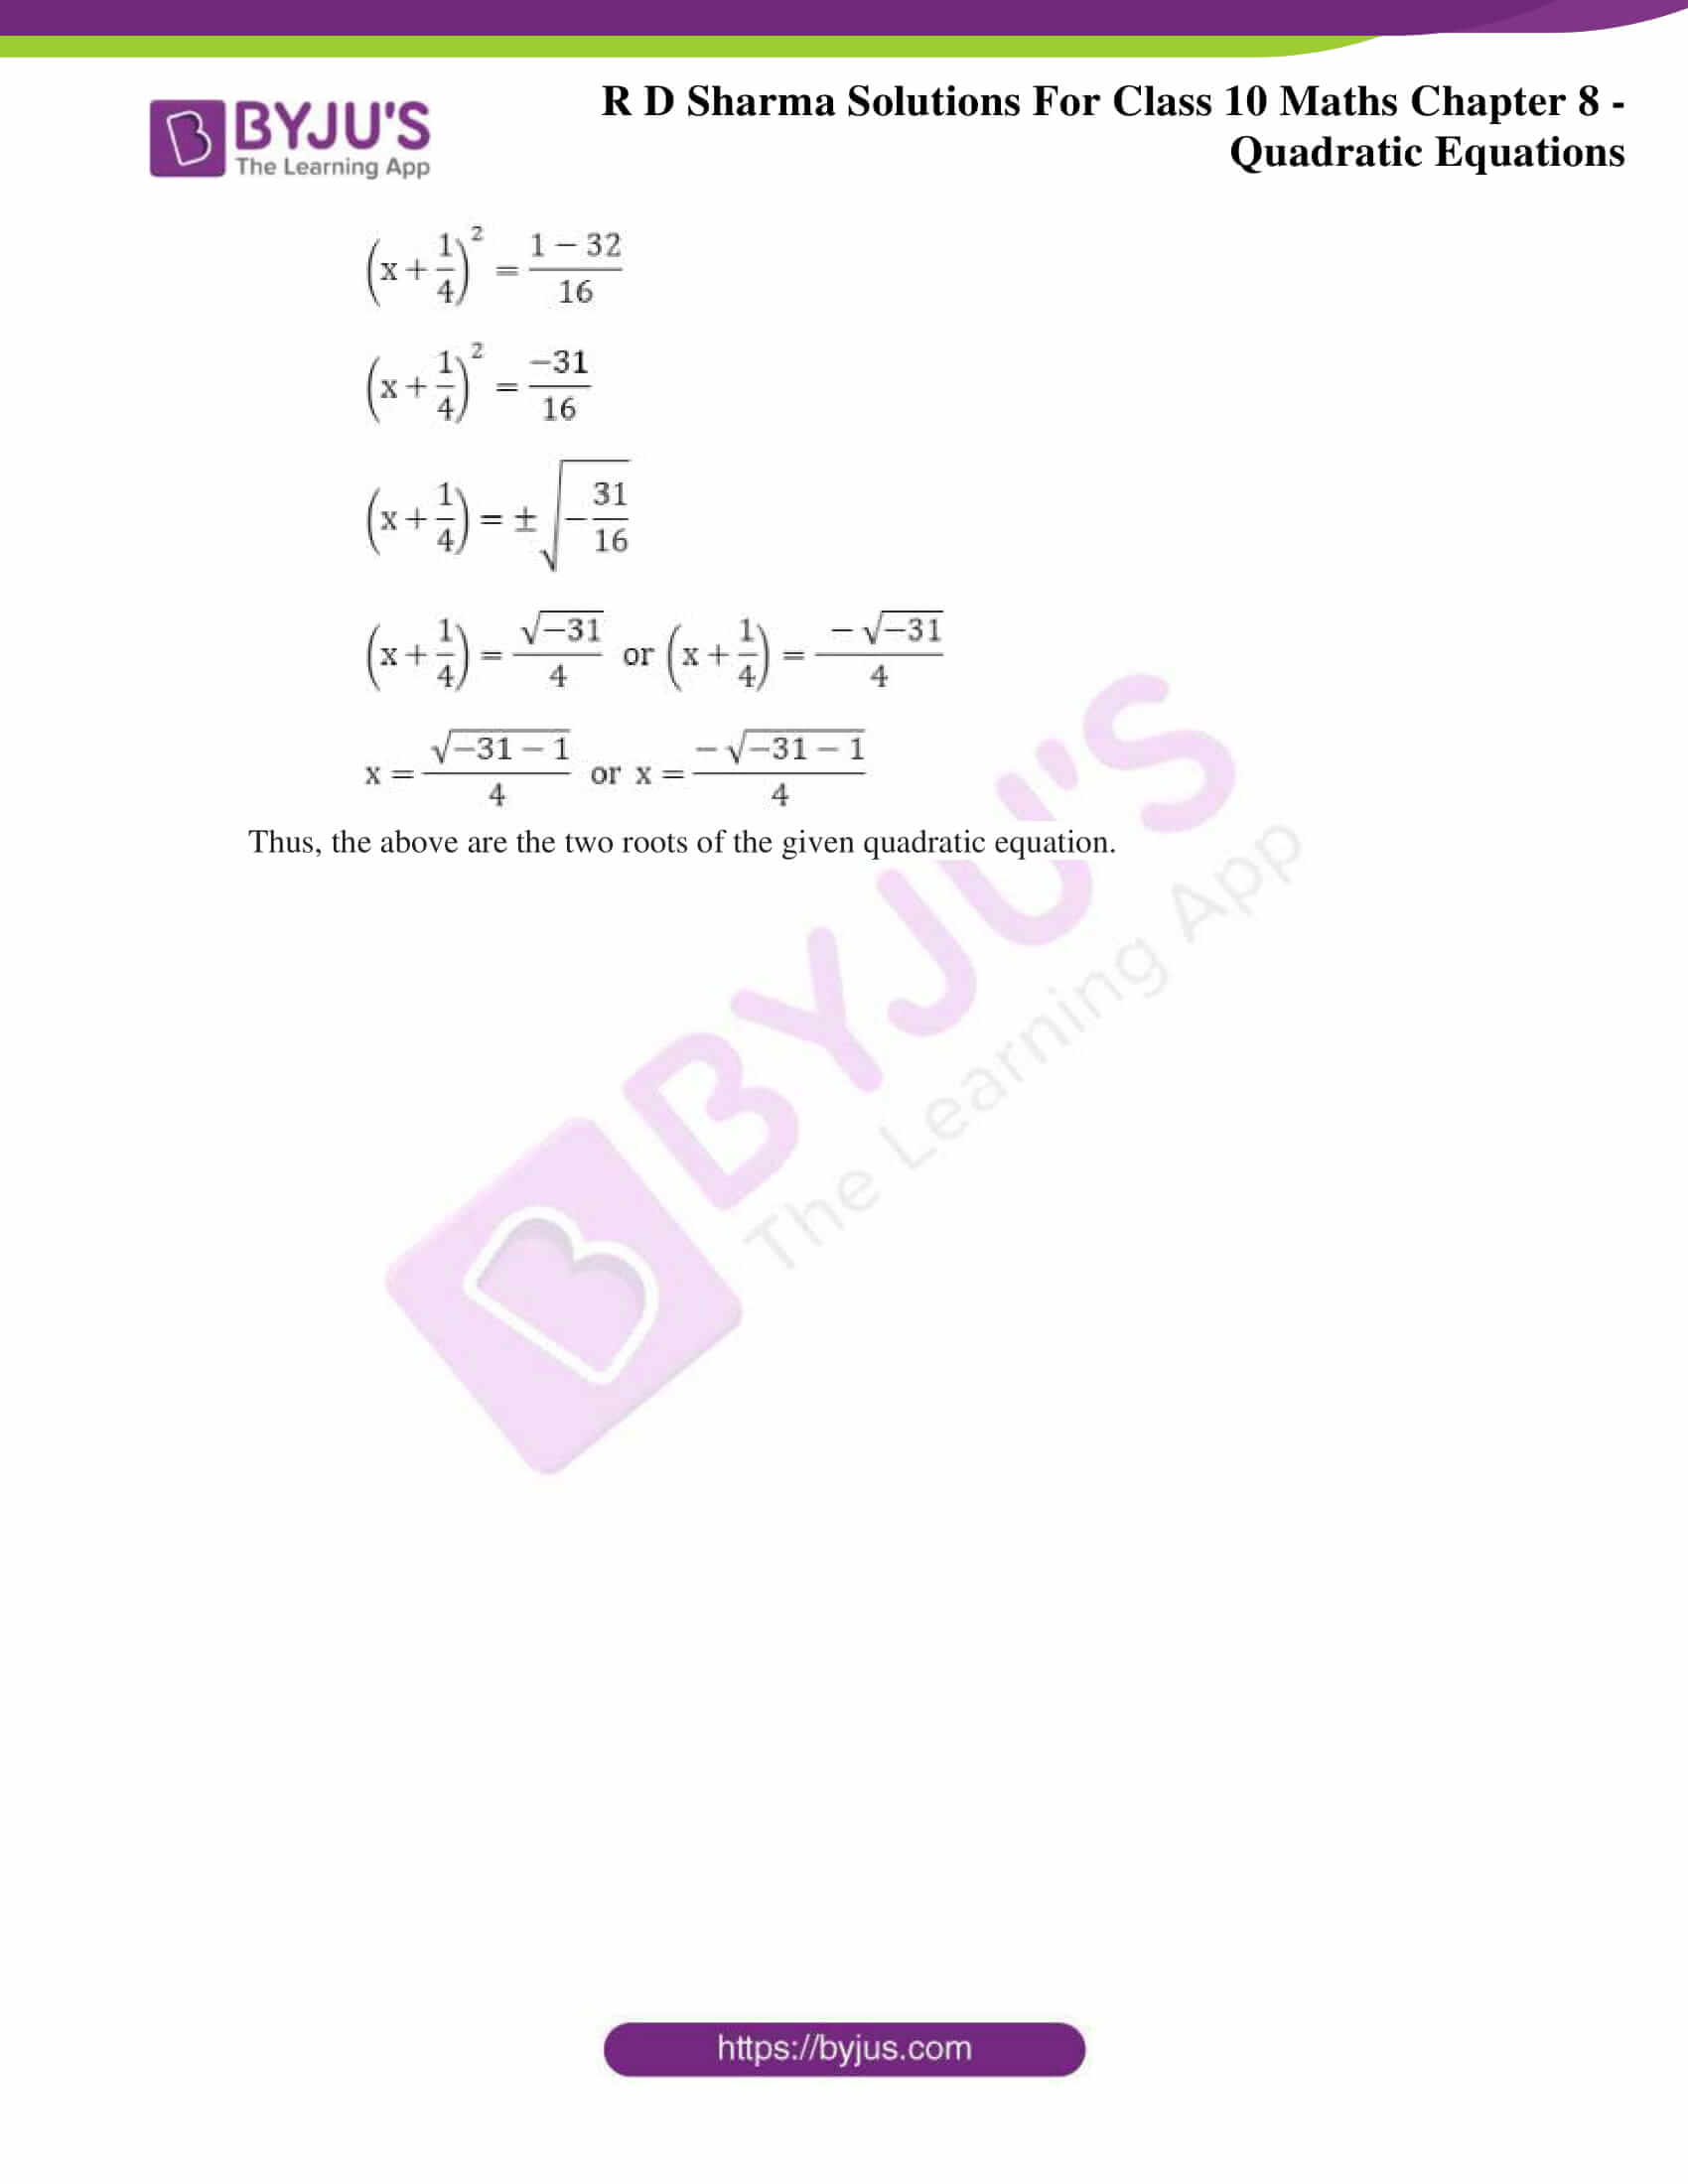 RD Sharma Solutions for Class 10 Chapter 8 Quadratic Equations 28